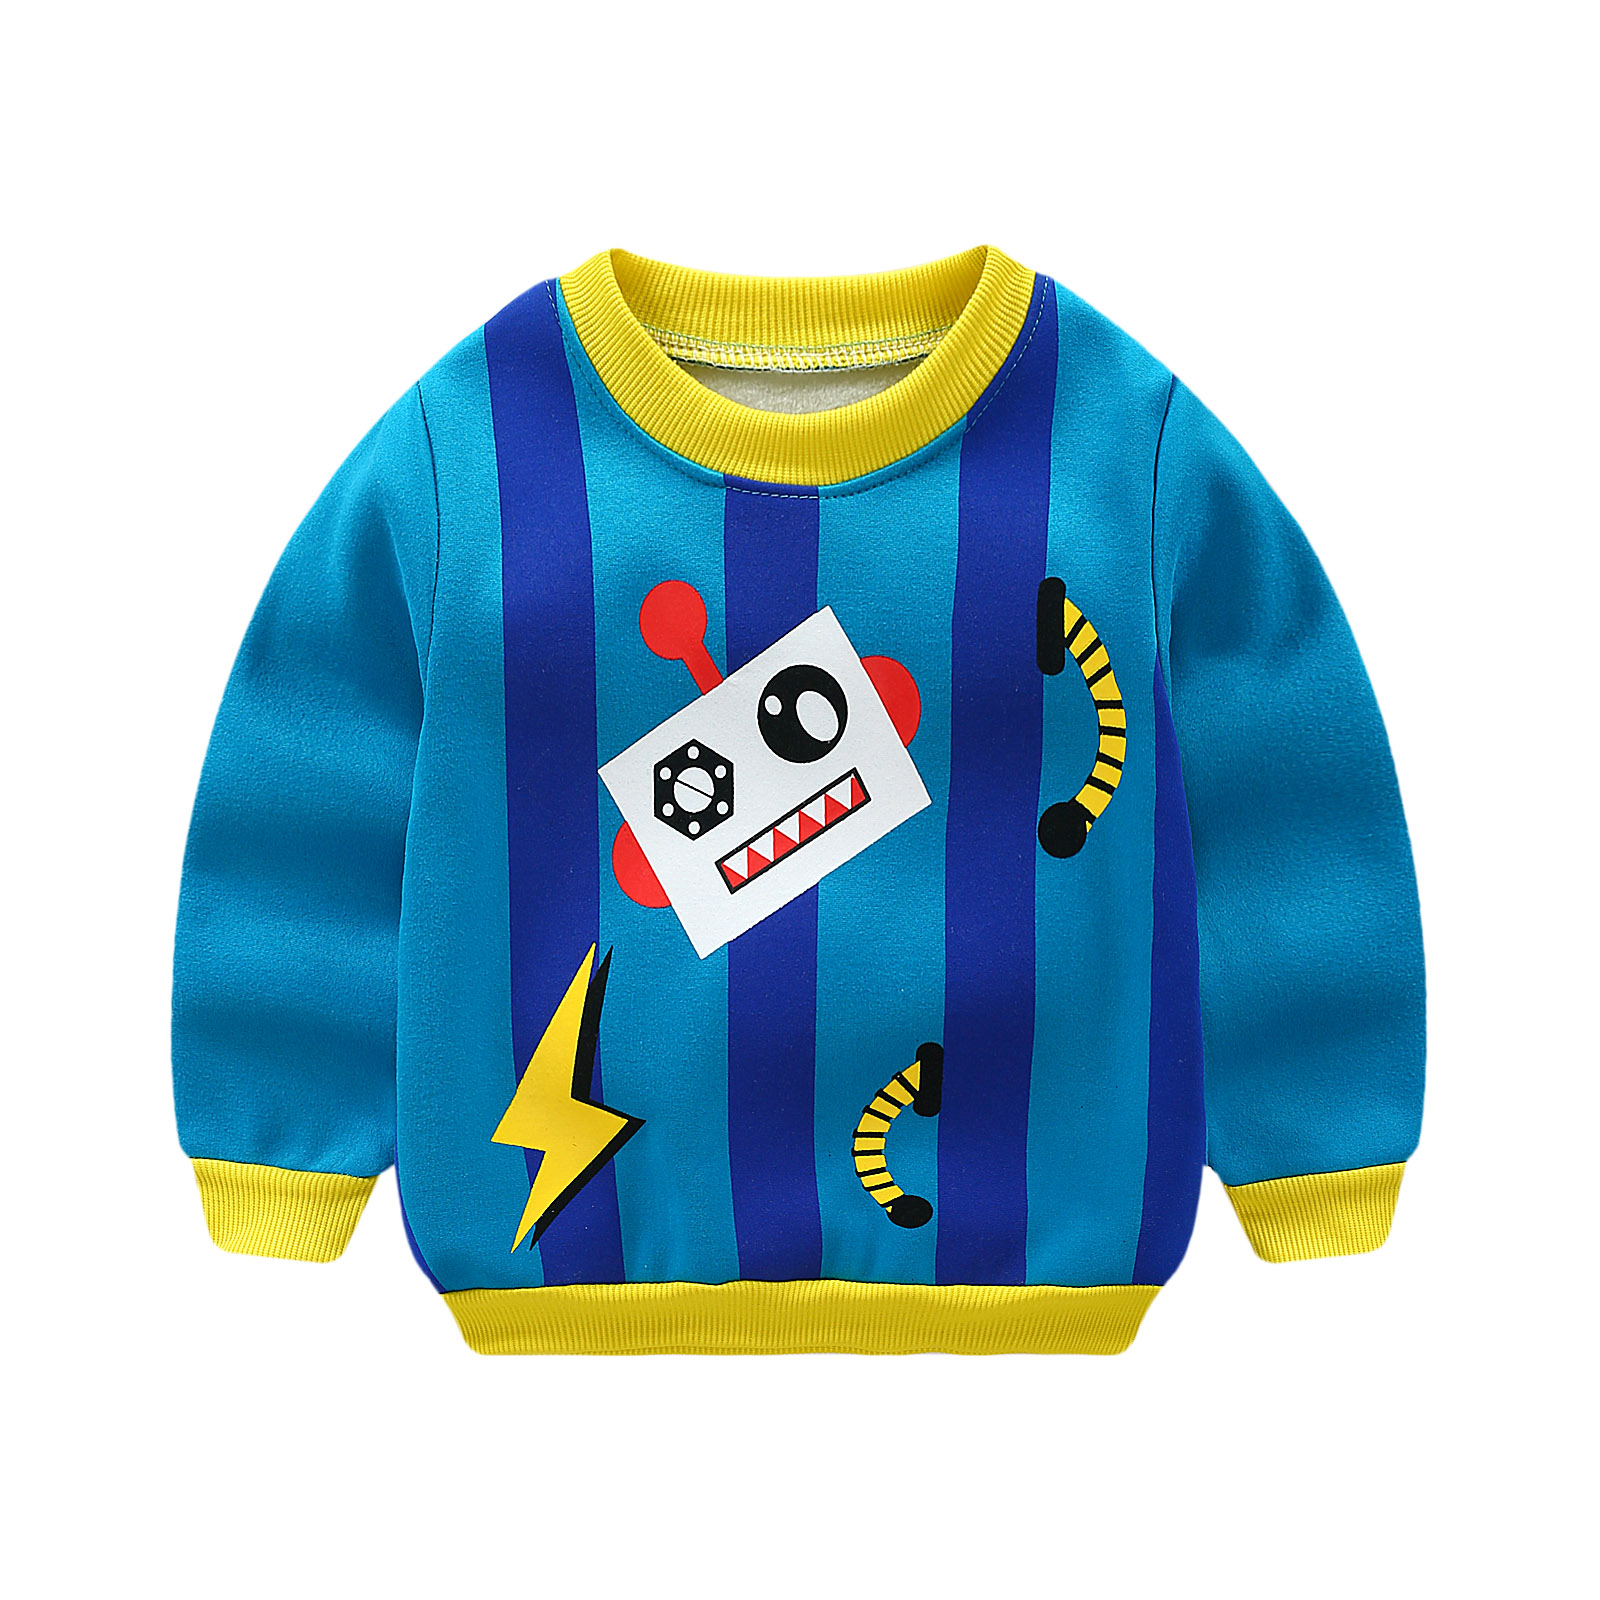 eee079d41 Kids Baby Boys Long Sleeve Shirt Snoppy dog Tops T Shirt Autumn ...